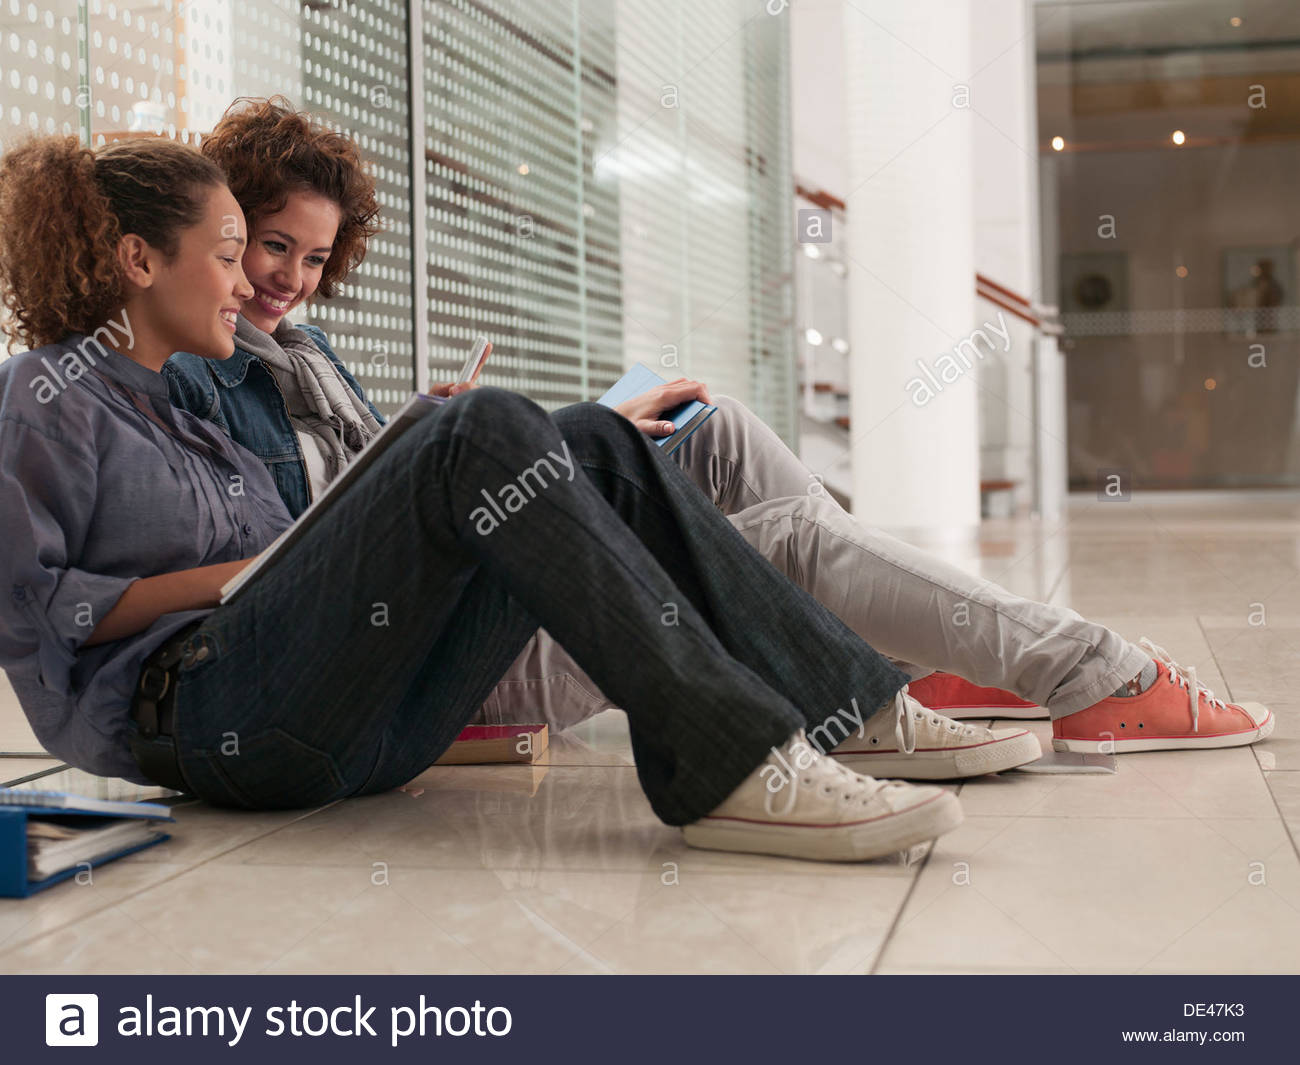 College students with notebooks sitting on floor and laughing - Stock Image